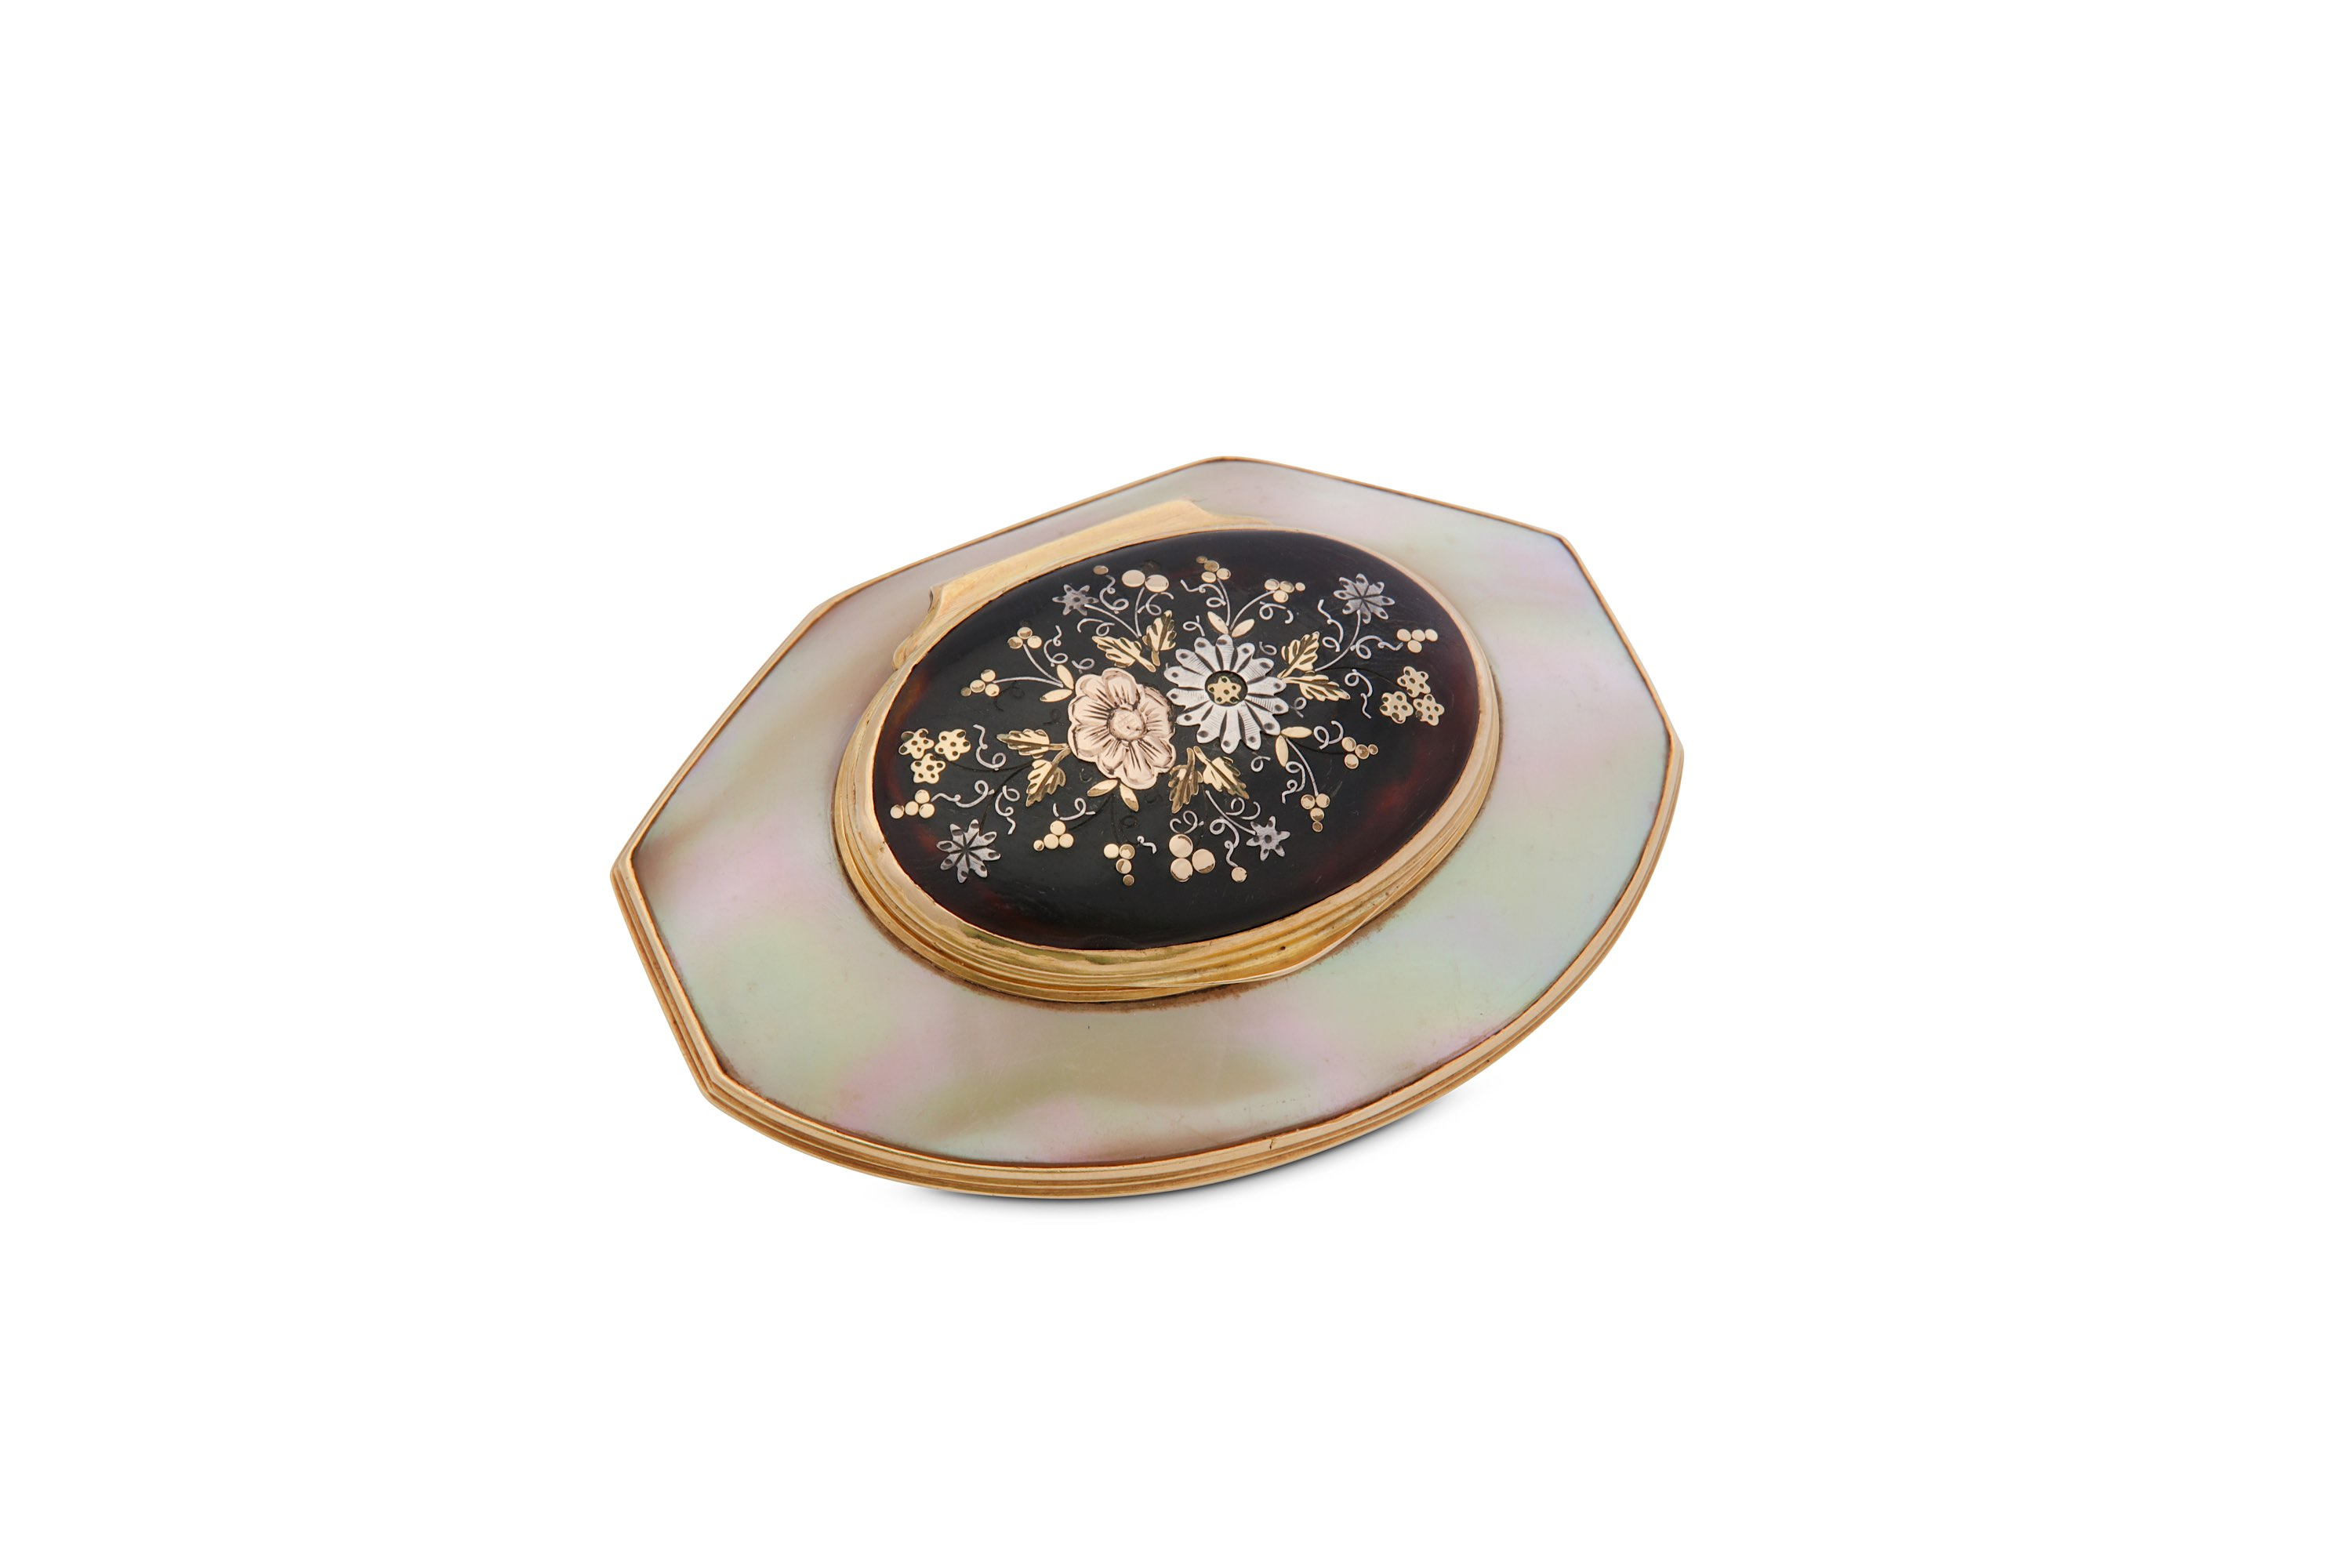 Lot 48 - A George II gold-mounted mother of pearl and tortoiseshell snuff box, circa 1740